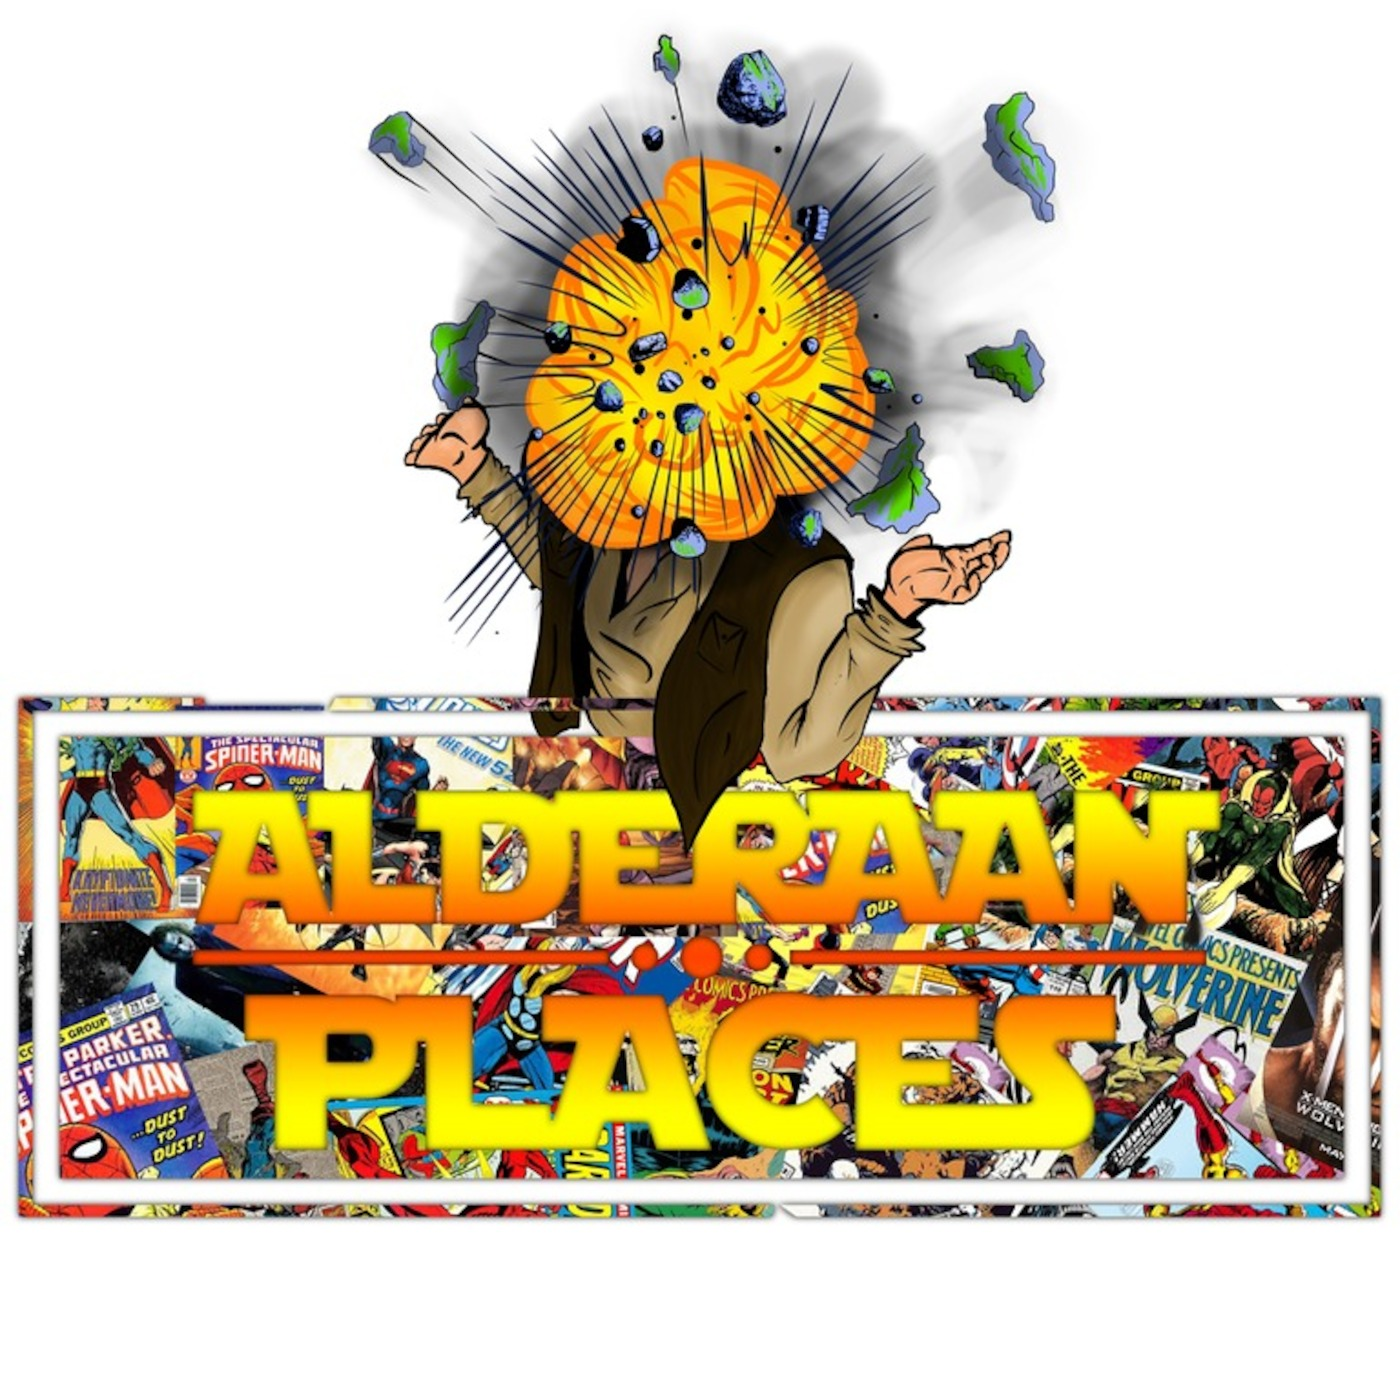 Alderaan Places' Podcast